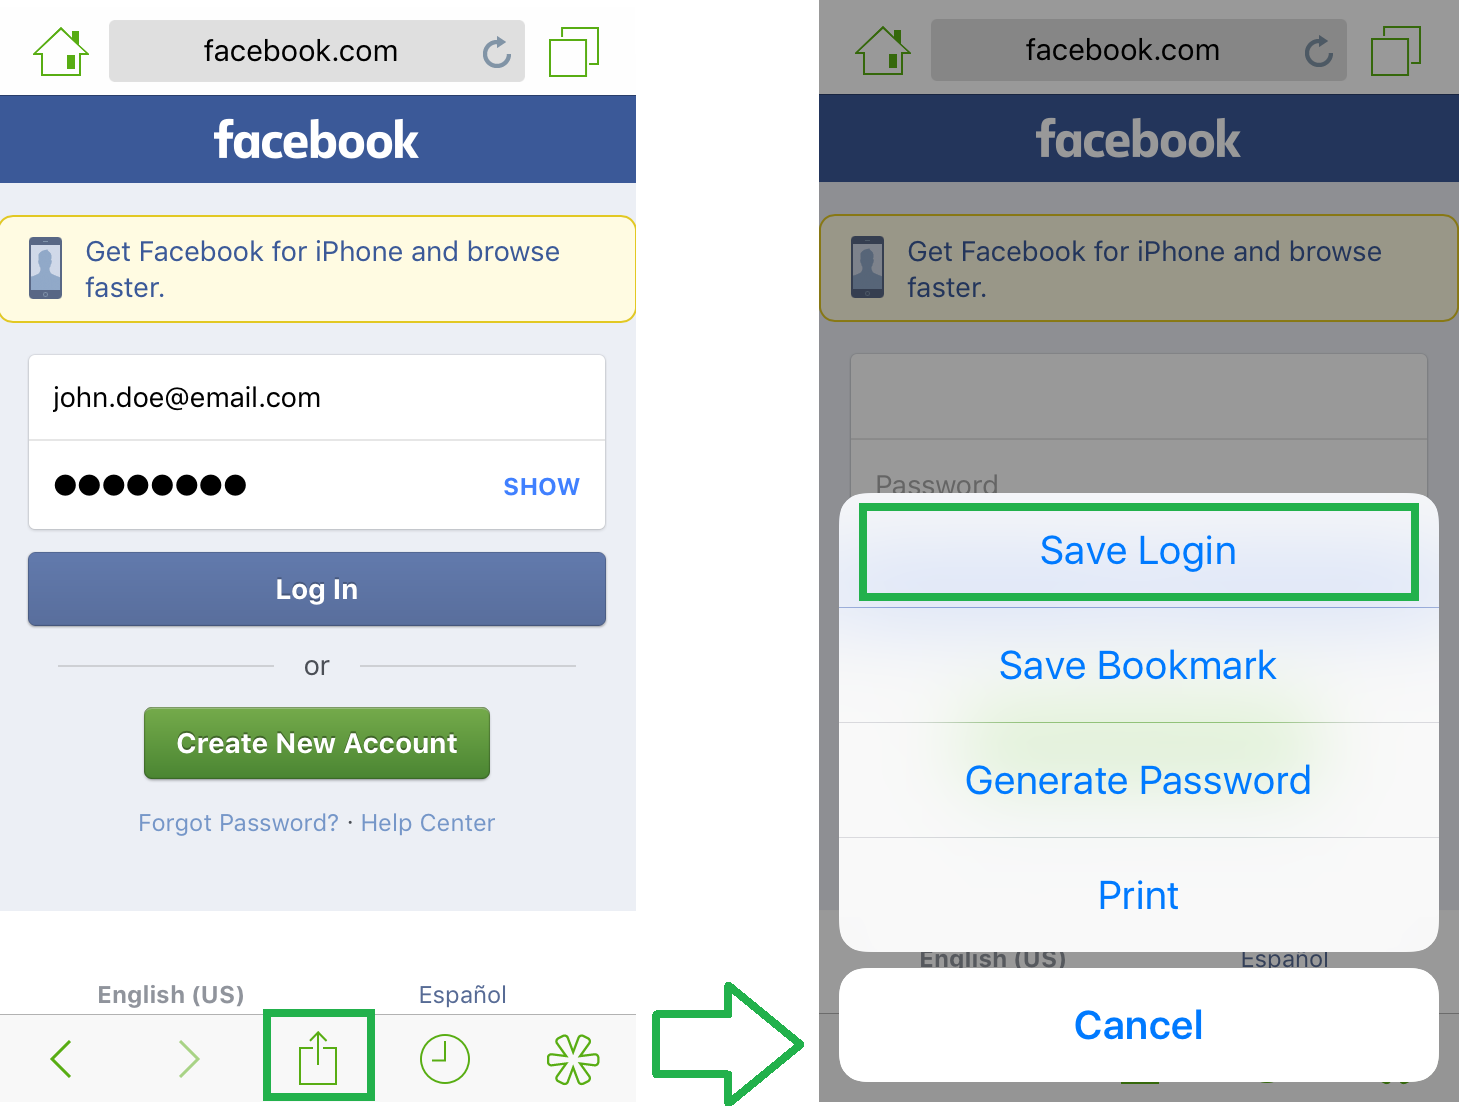 How to Manually Save a Login